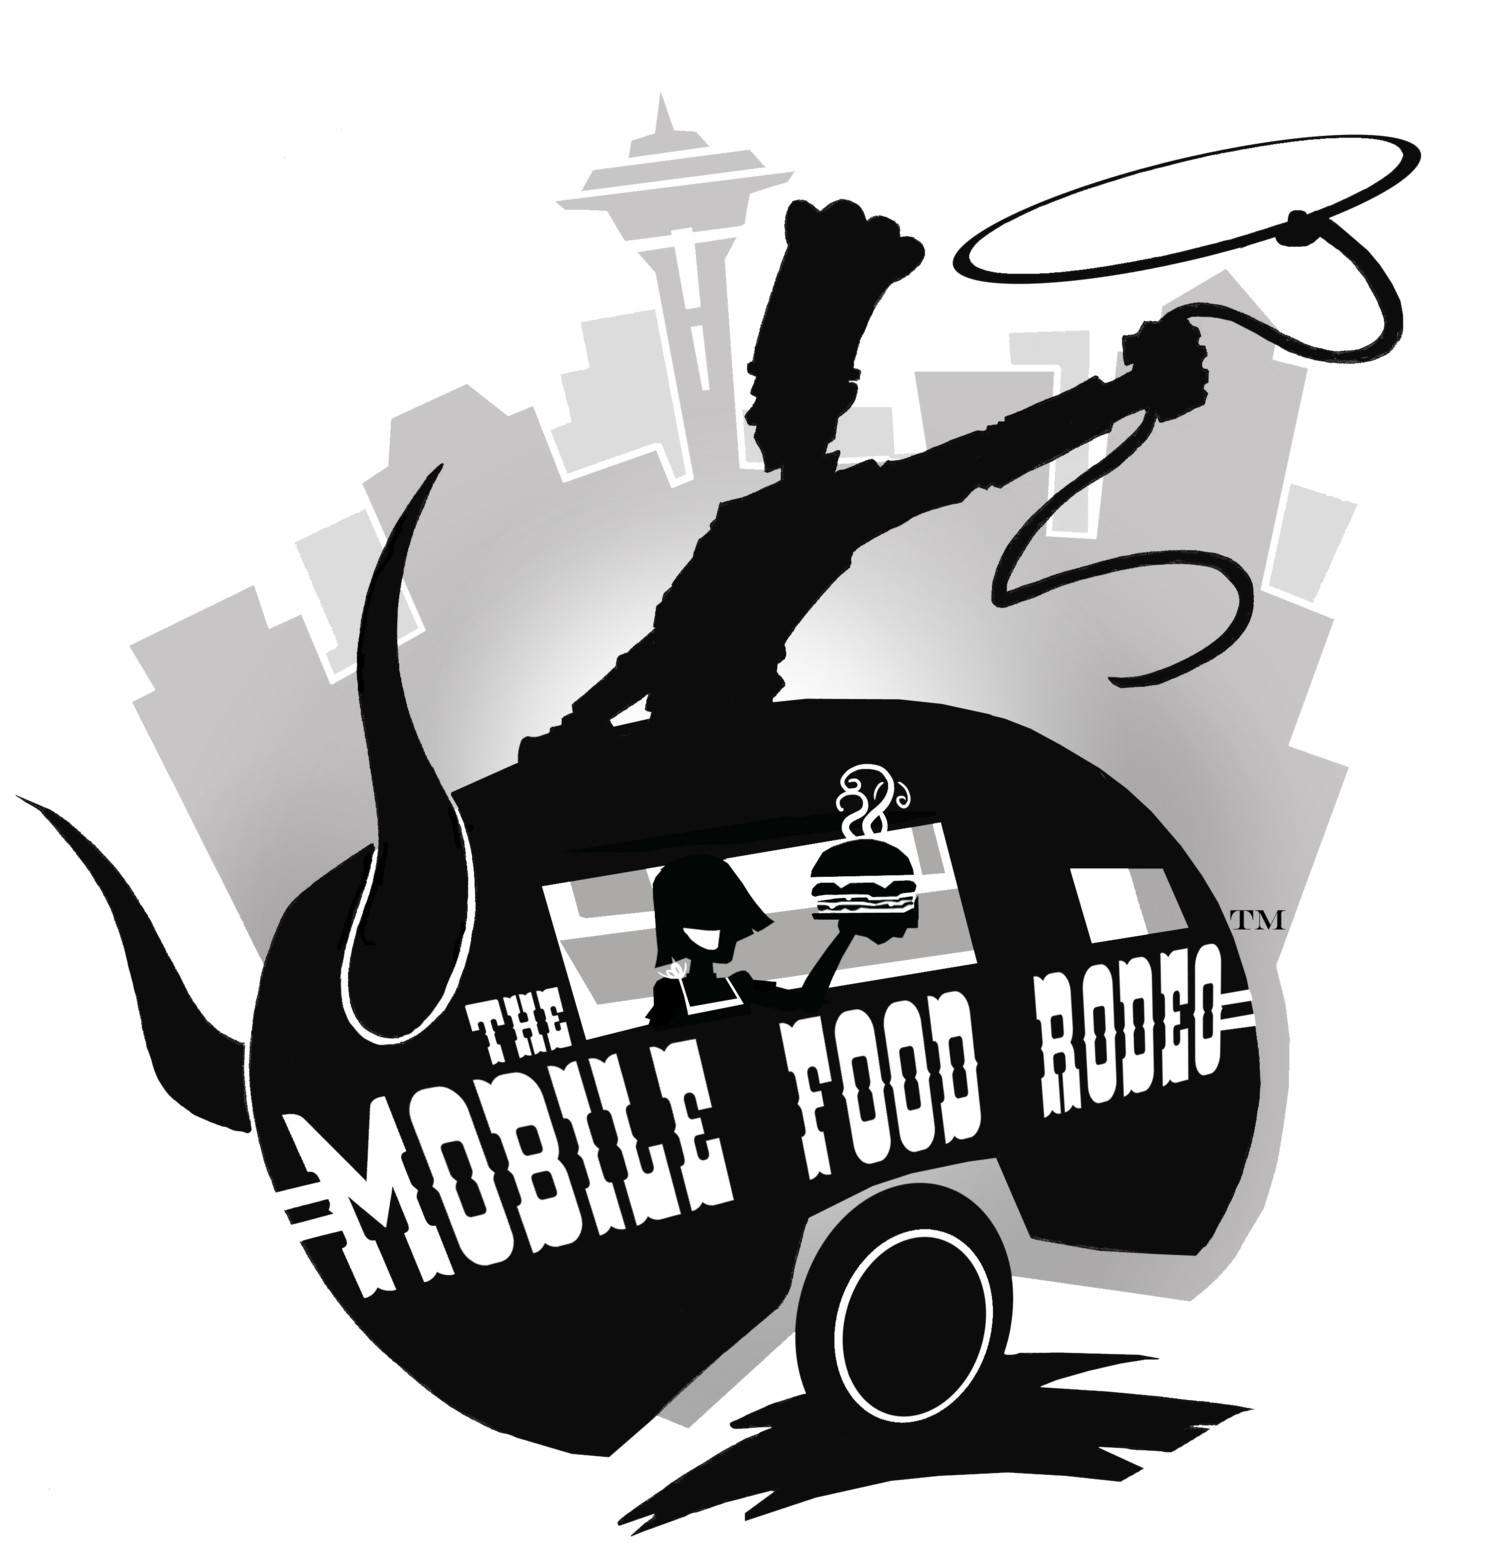 image royalty free MOBILE FOOD RODEO